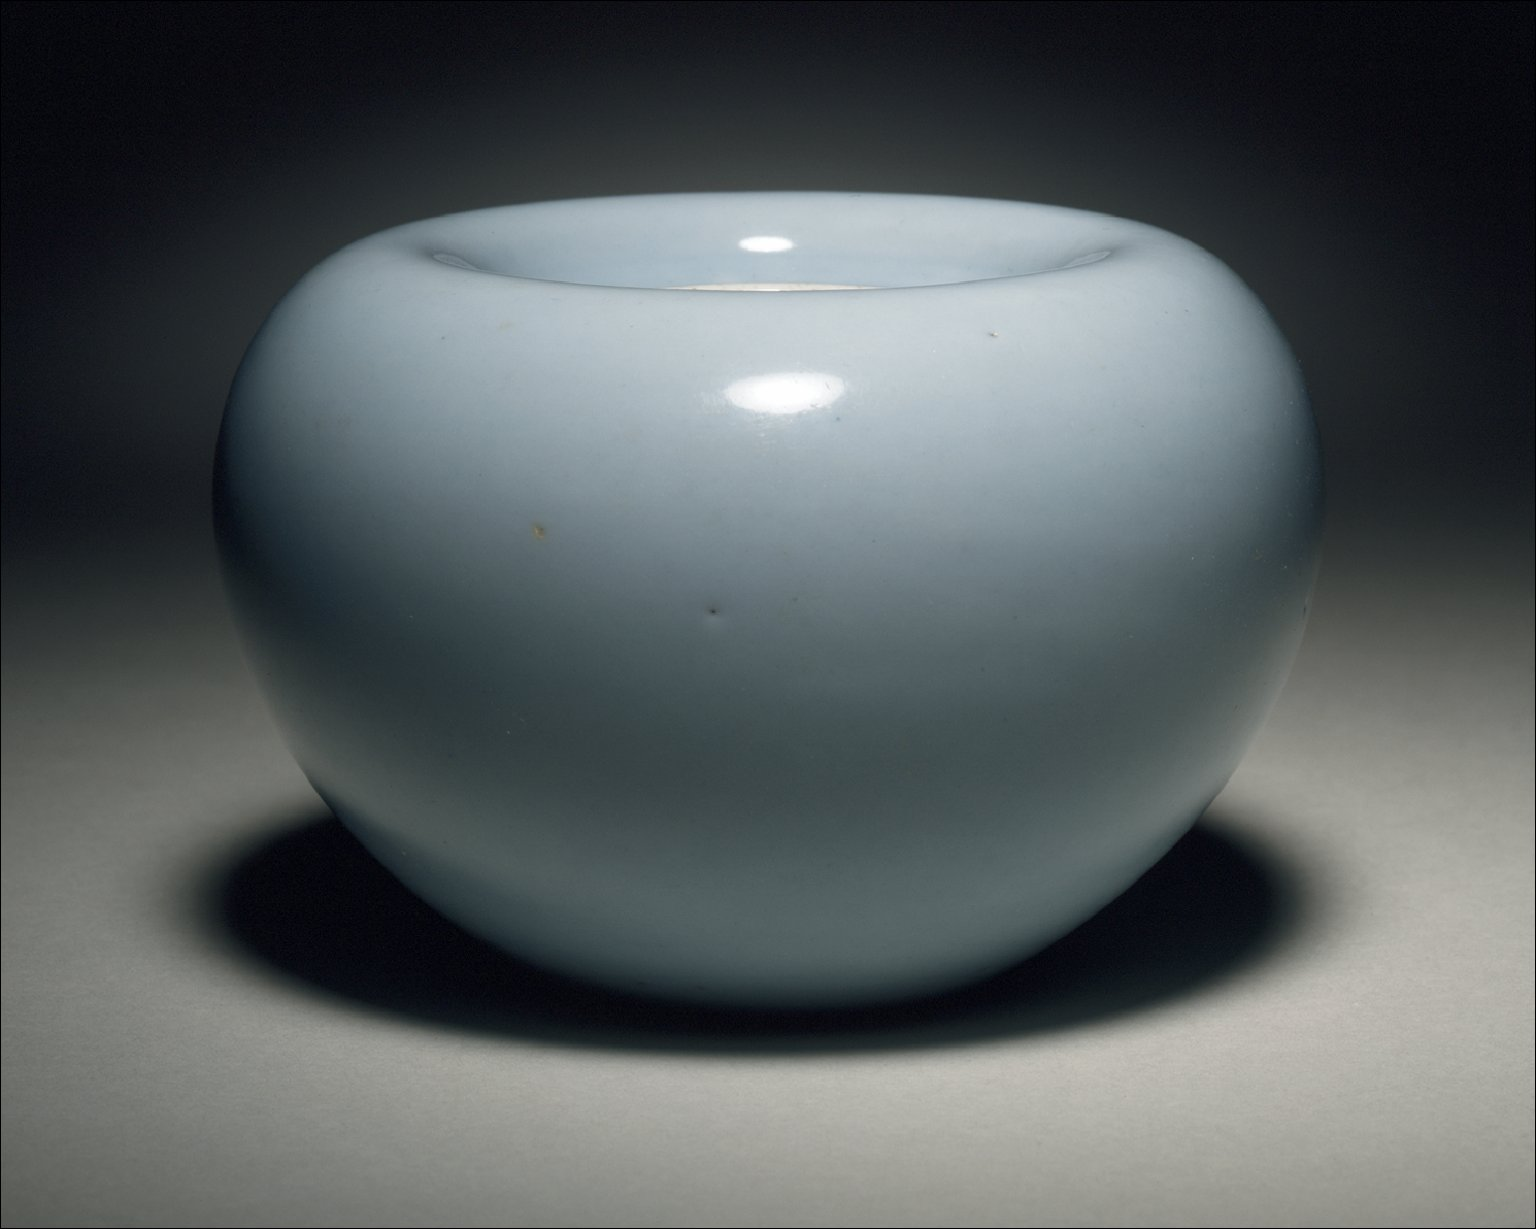 Water Pot (Shuicheng) in the Form of an Apple